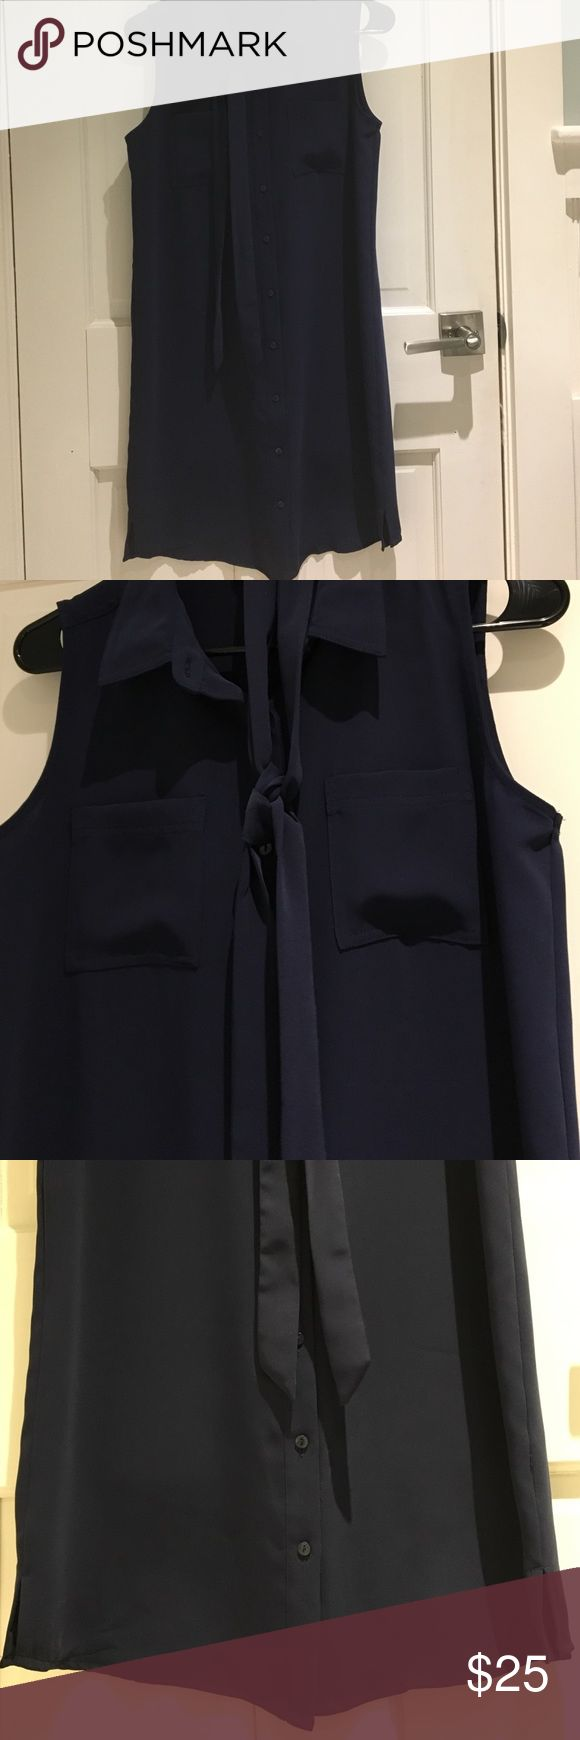 Adrienne Vittadini shirt dress size 4 Adrienne Vittadini shirt dress navy blue. Button down sleeveless with option to tie. Size tag came off but it's a size 4. 100% polyester. Never worn Adrienne Vittadini Dresses